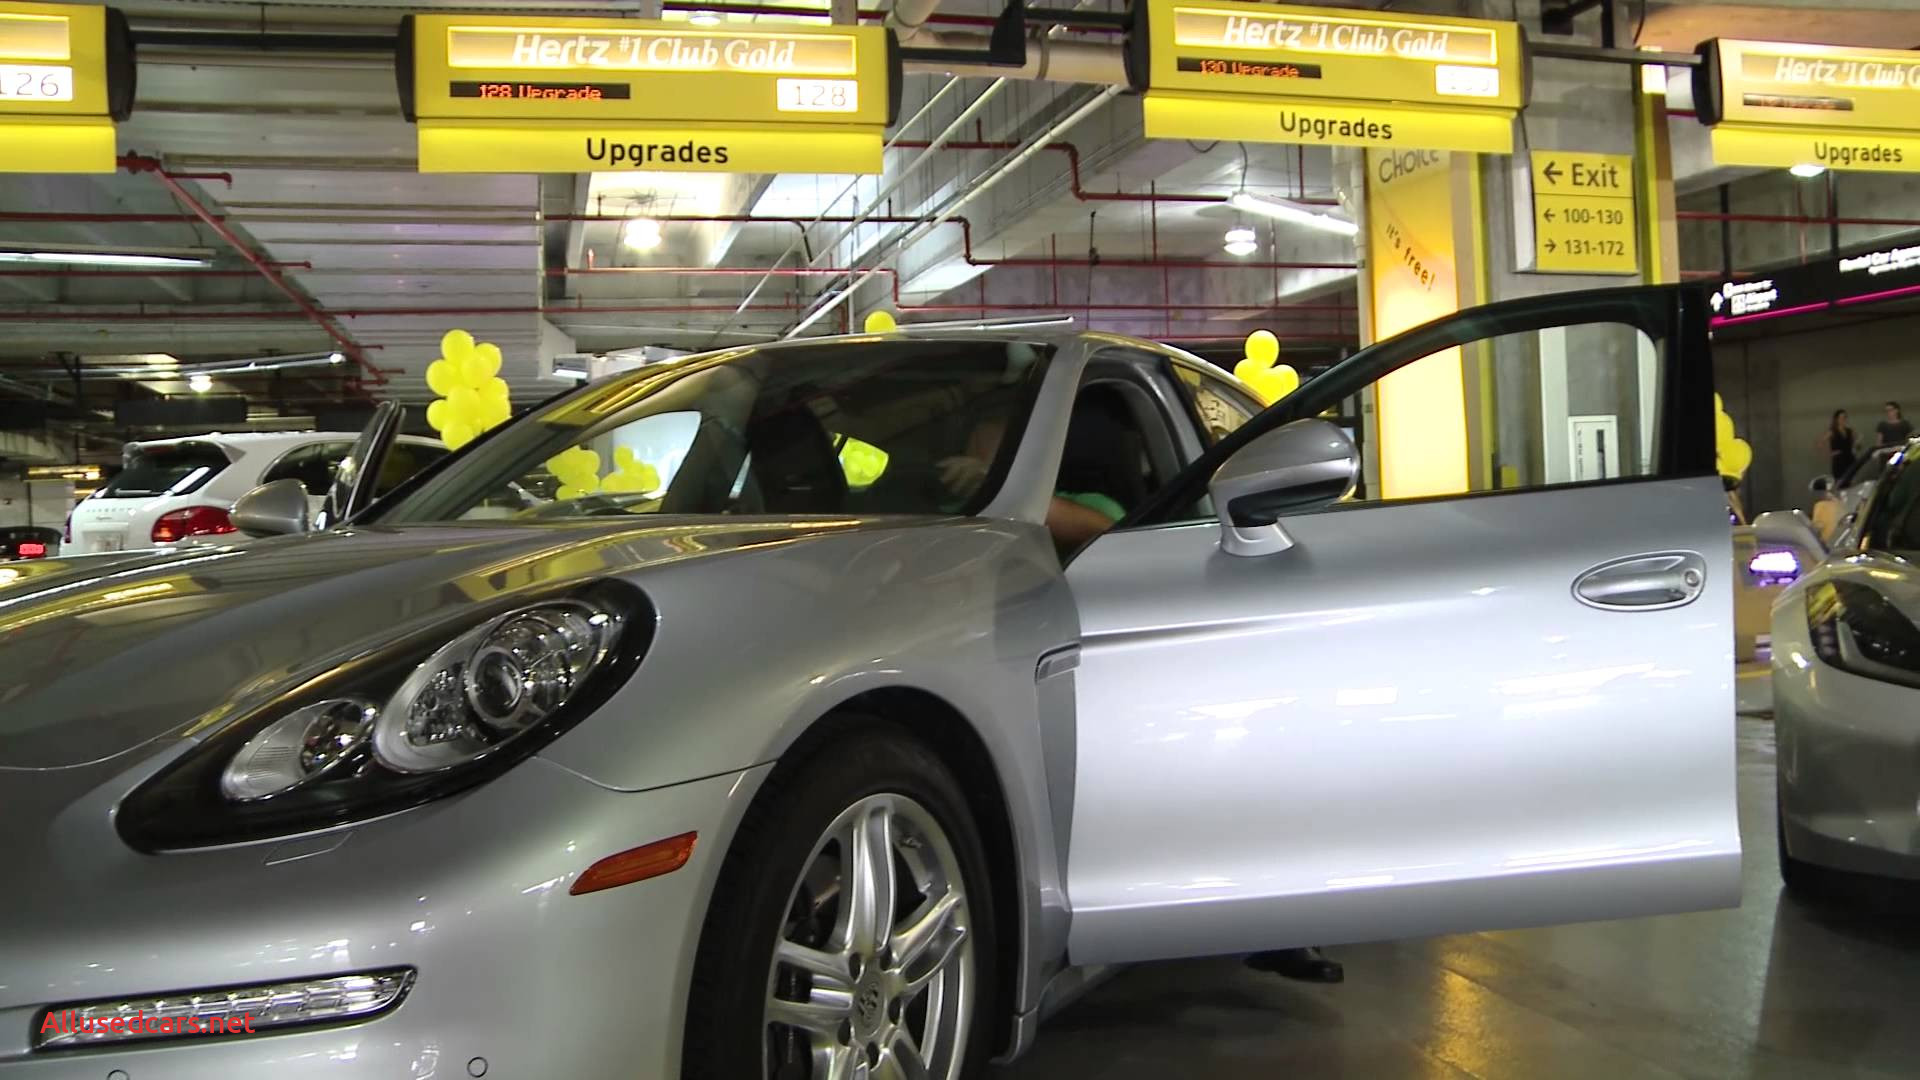 Awesome Repossessed Cars for Sale Near Me New Awesome Rental Cars for Sale Near Me